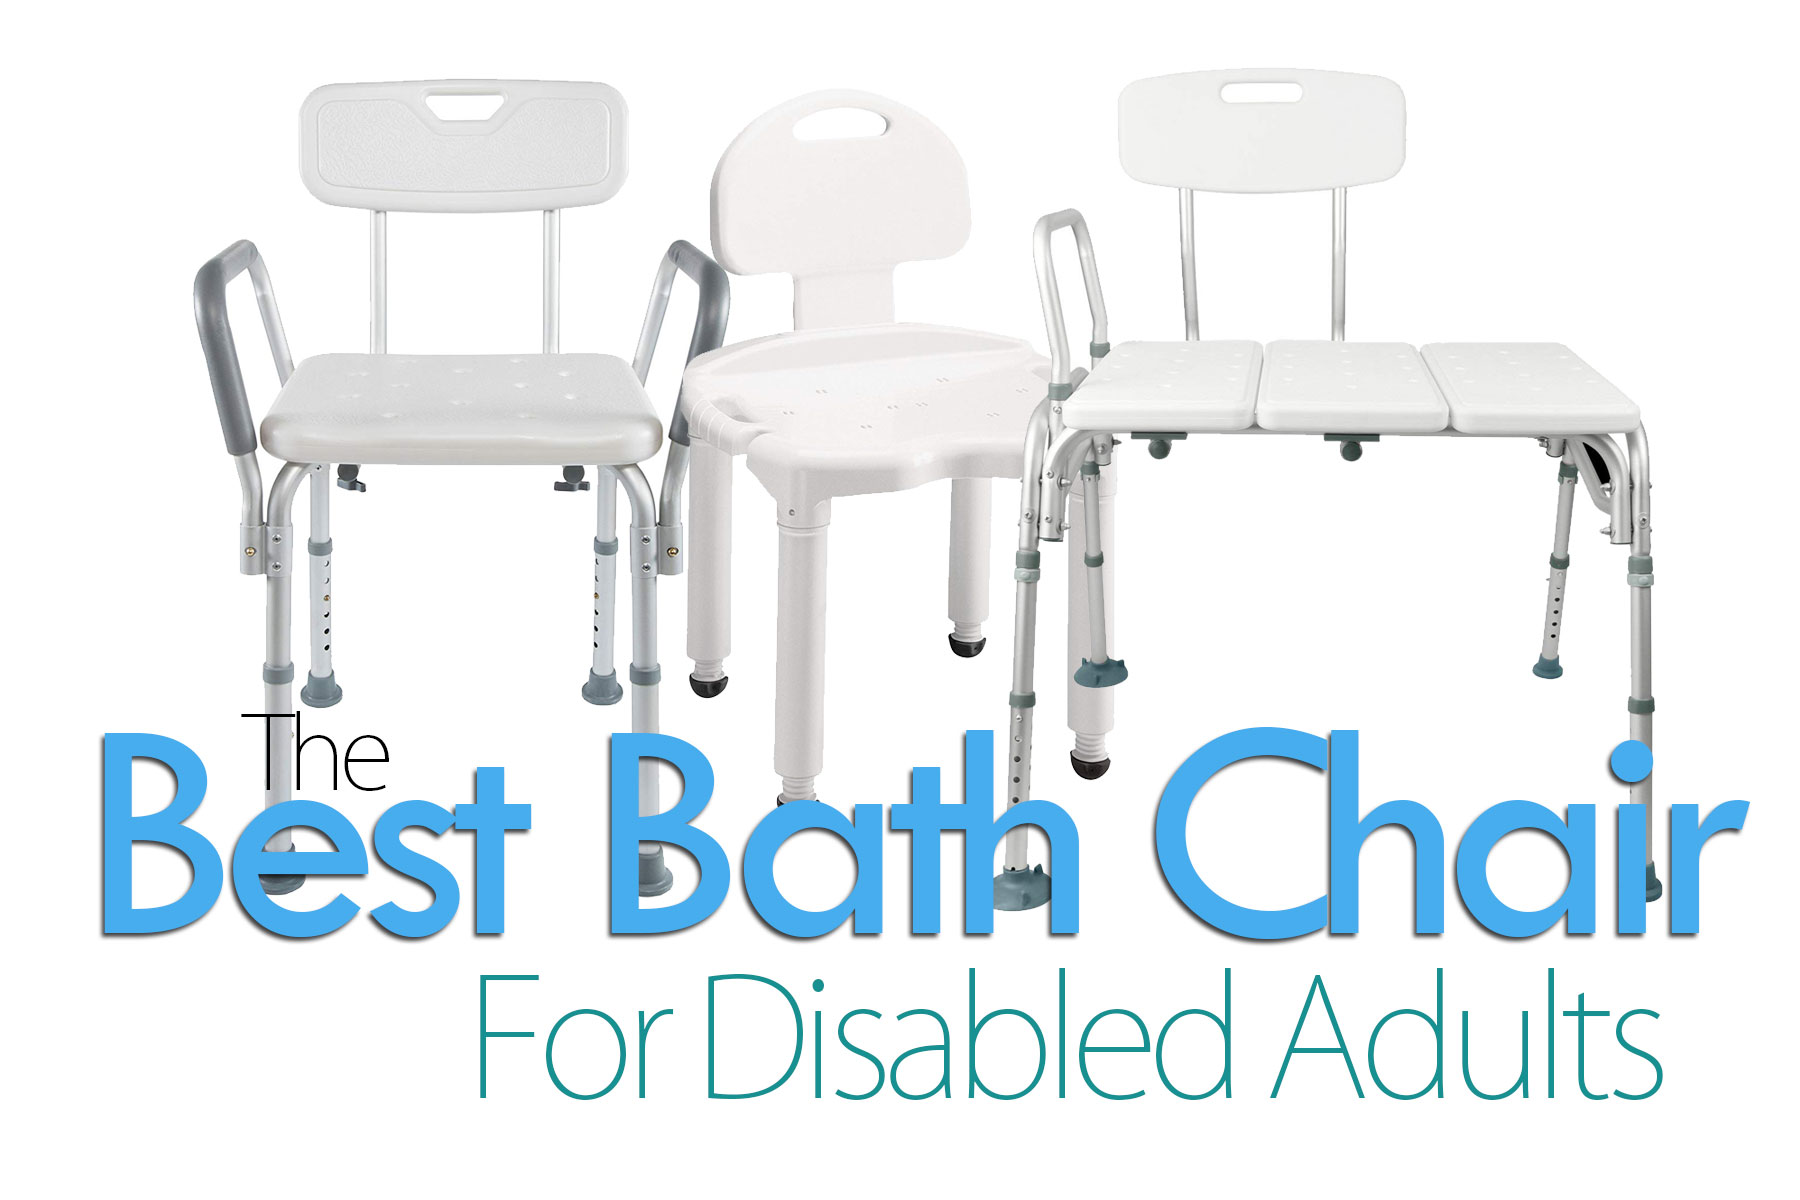 Best Bath Chair For Disabled Adults Top 6 Picks Smiling